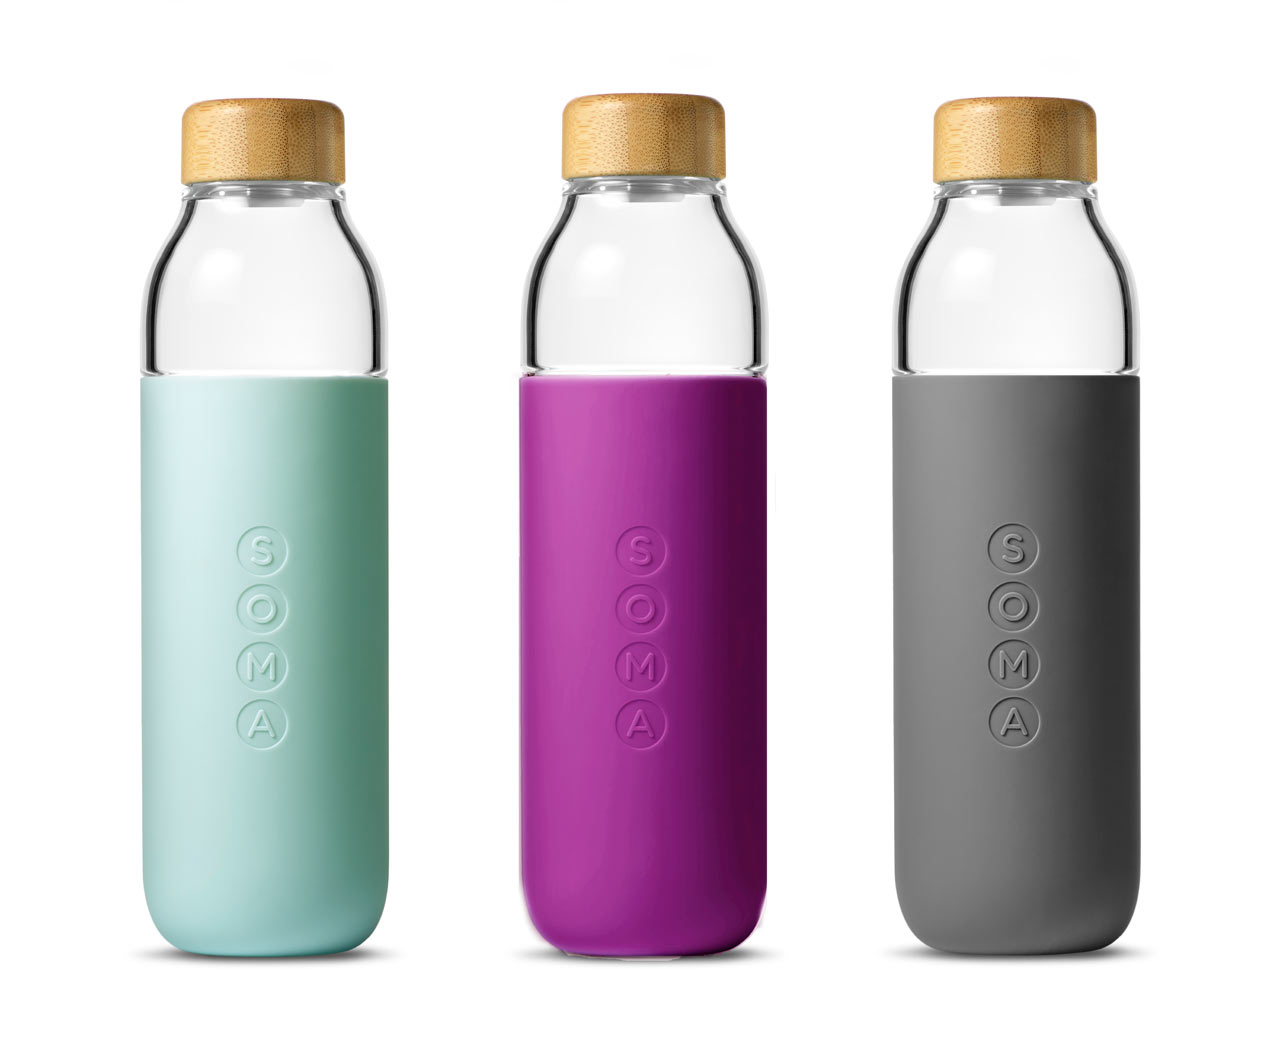 soma launches a glass water bottle design milk. Black Bedroom Furniture Sets. Home Design Ideas